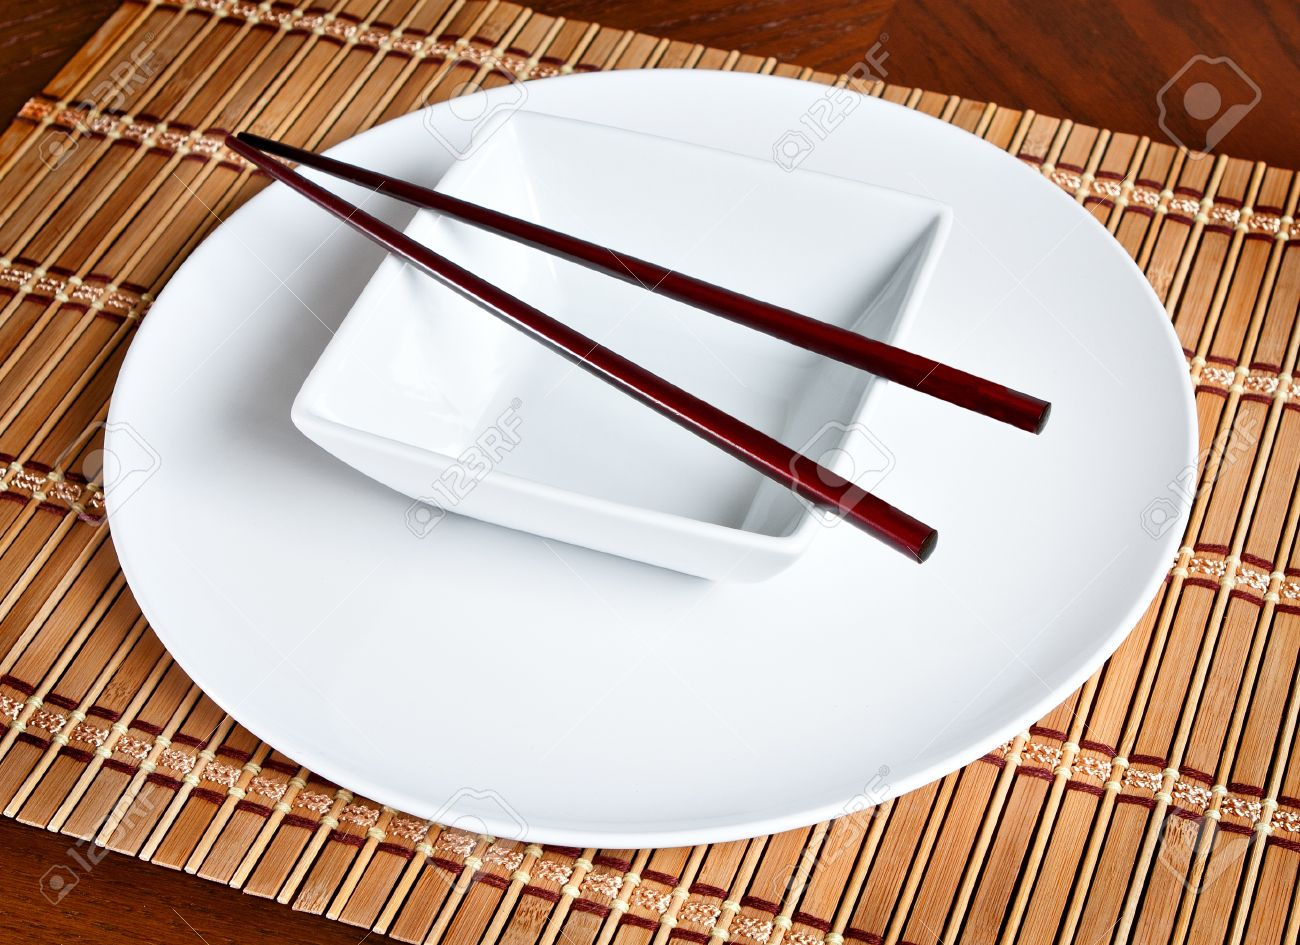 A Modern Asian Table Setting Stock Photo